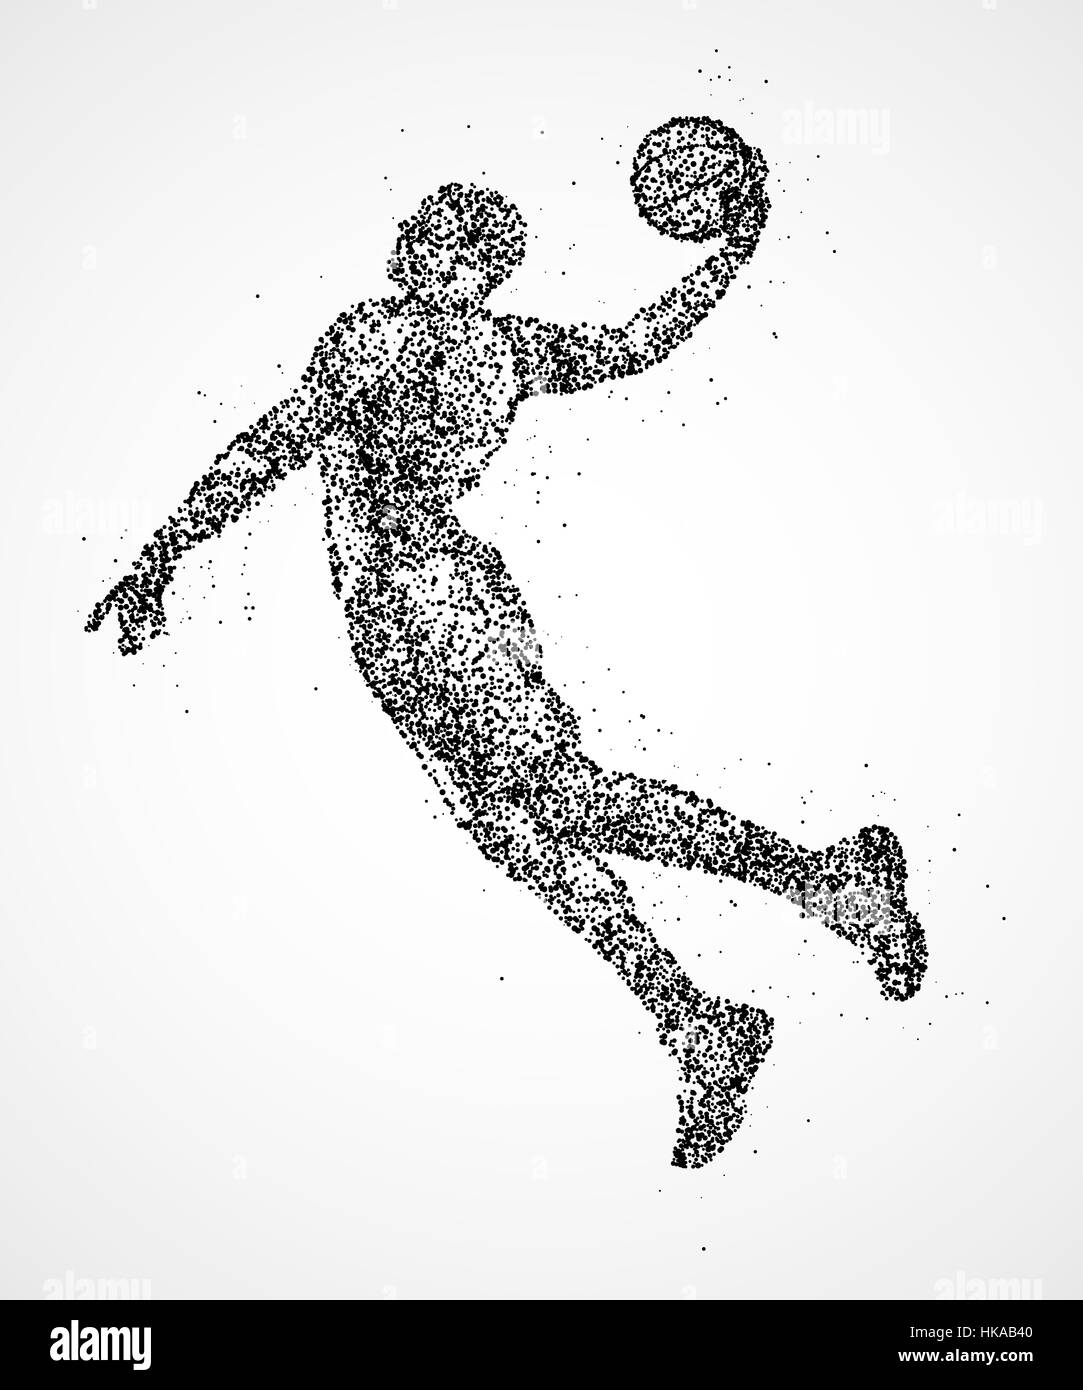 Abstract basketball player in jump from the black circles. Photo illustration. - Stock Image